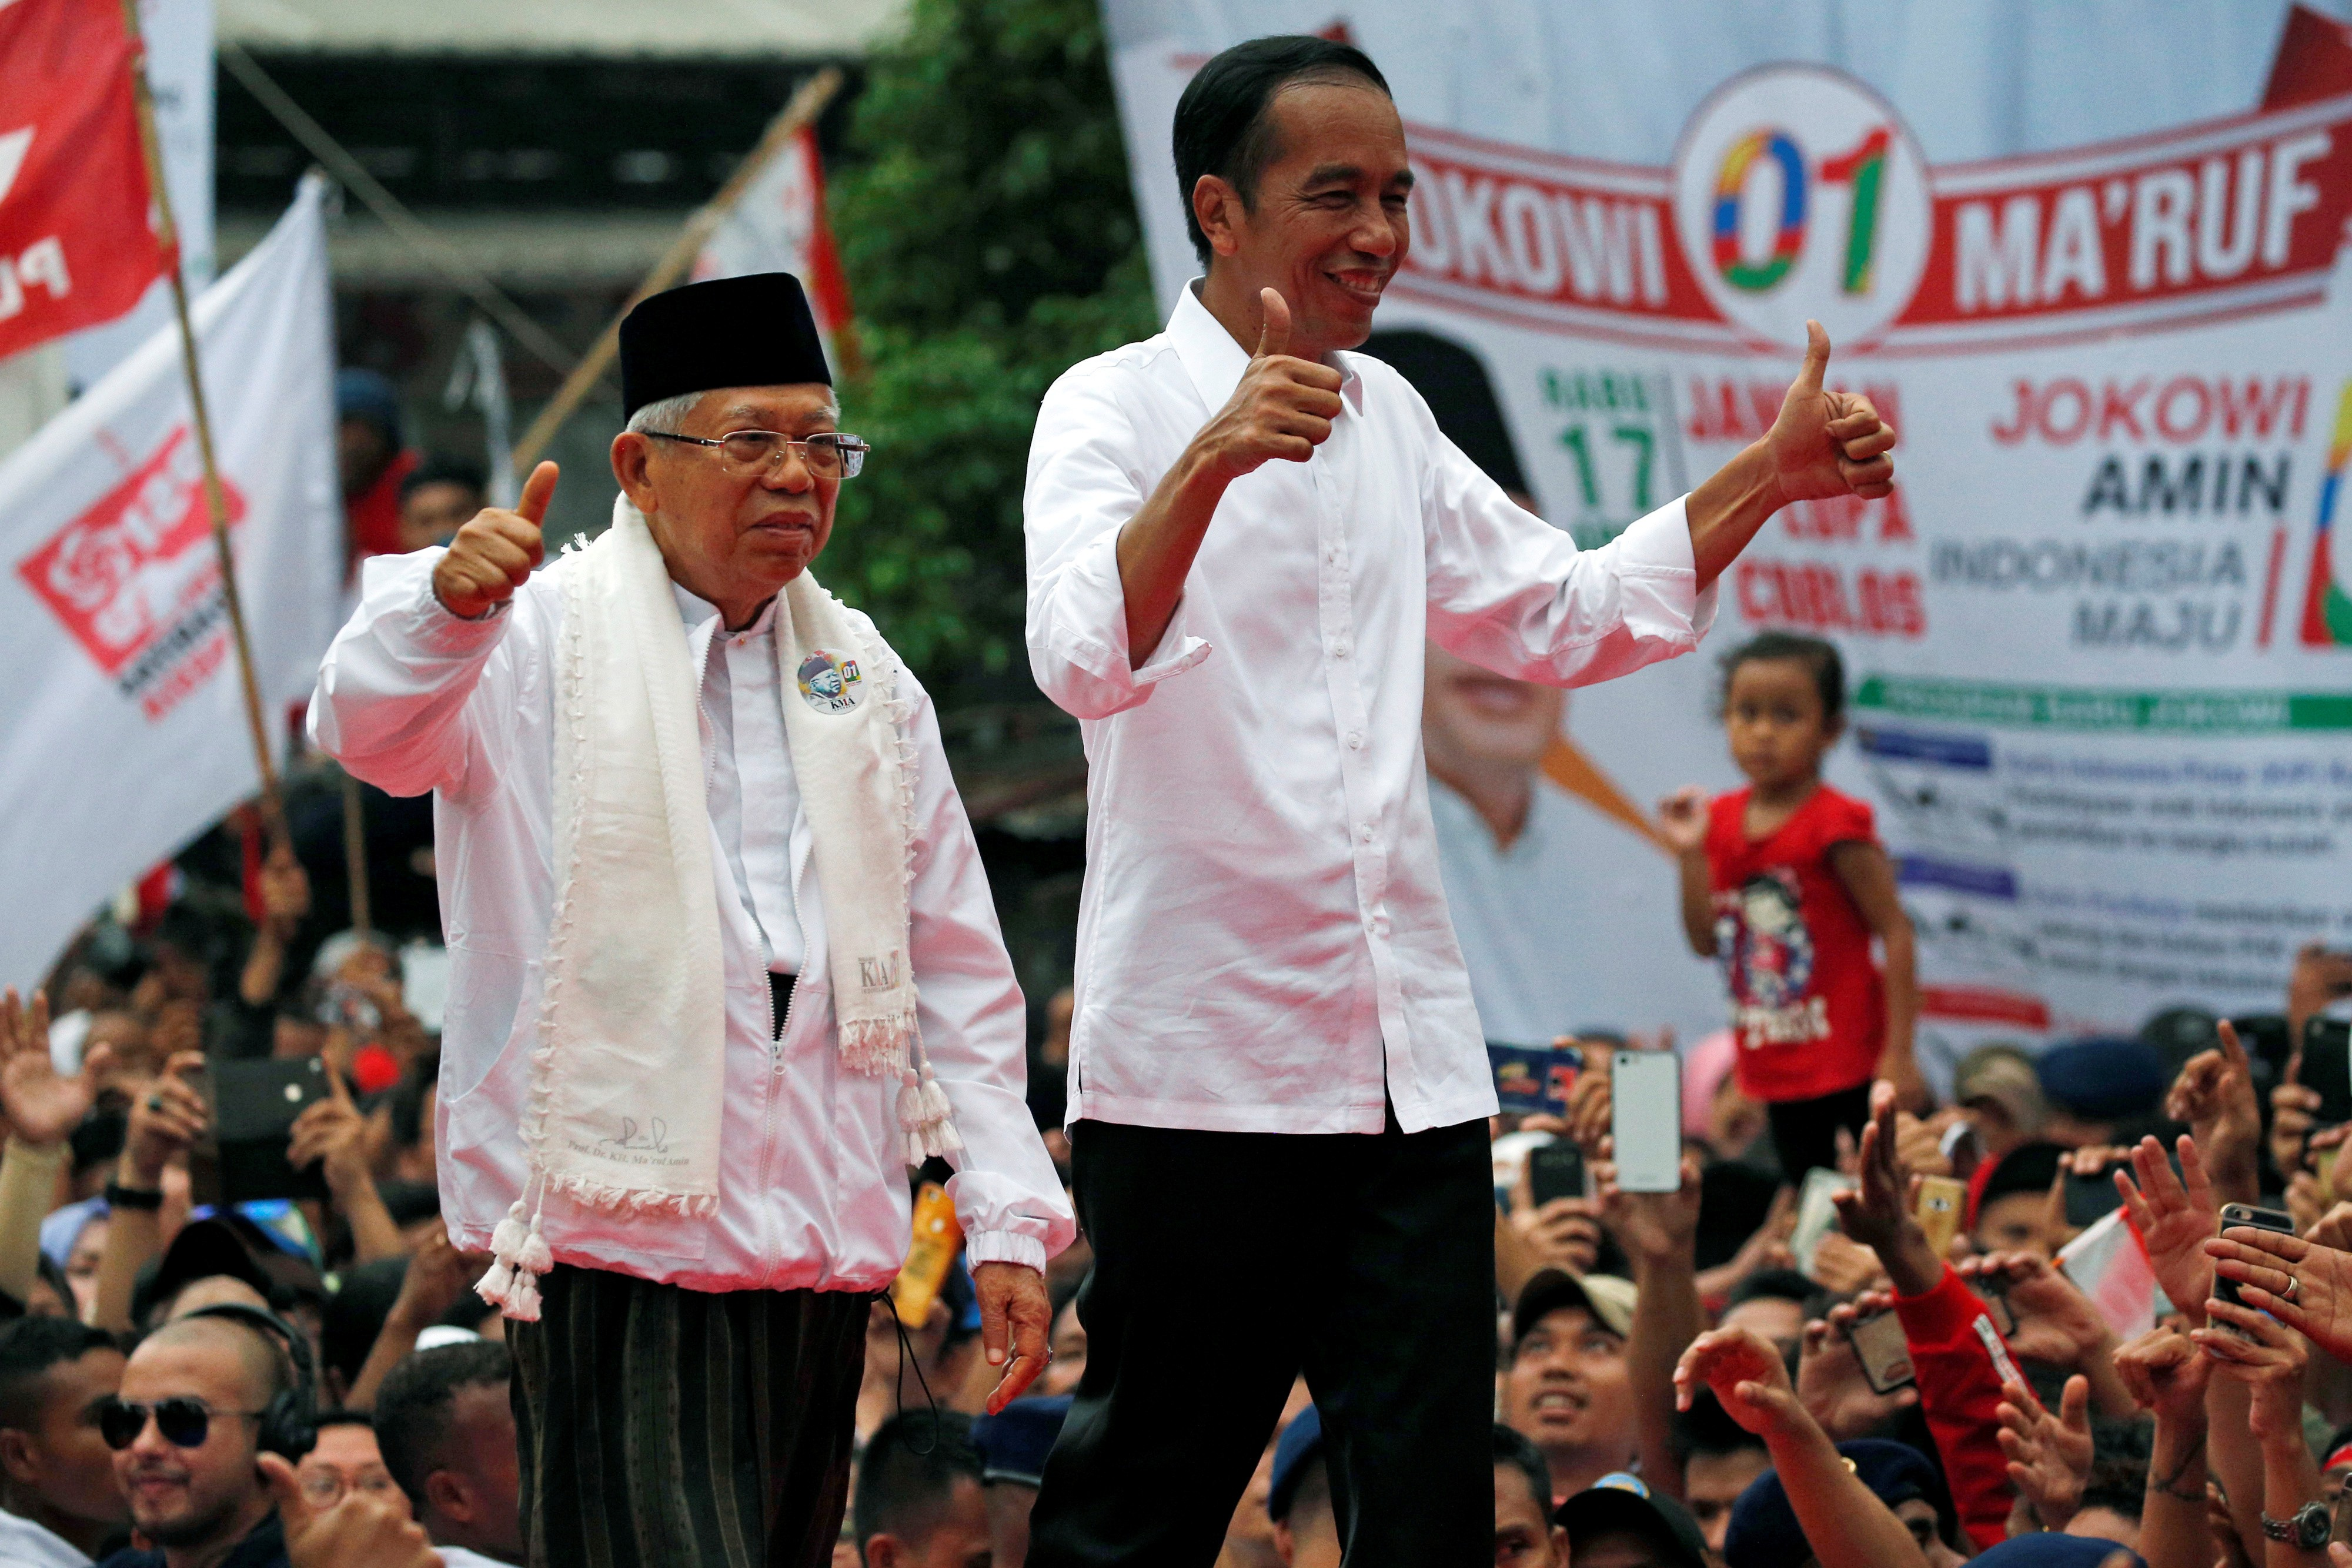 Election Wont End This Overnight But >> Indonesia Election Who Will Win Between Joko Widodo And Prabowo